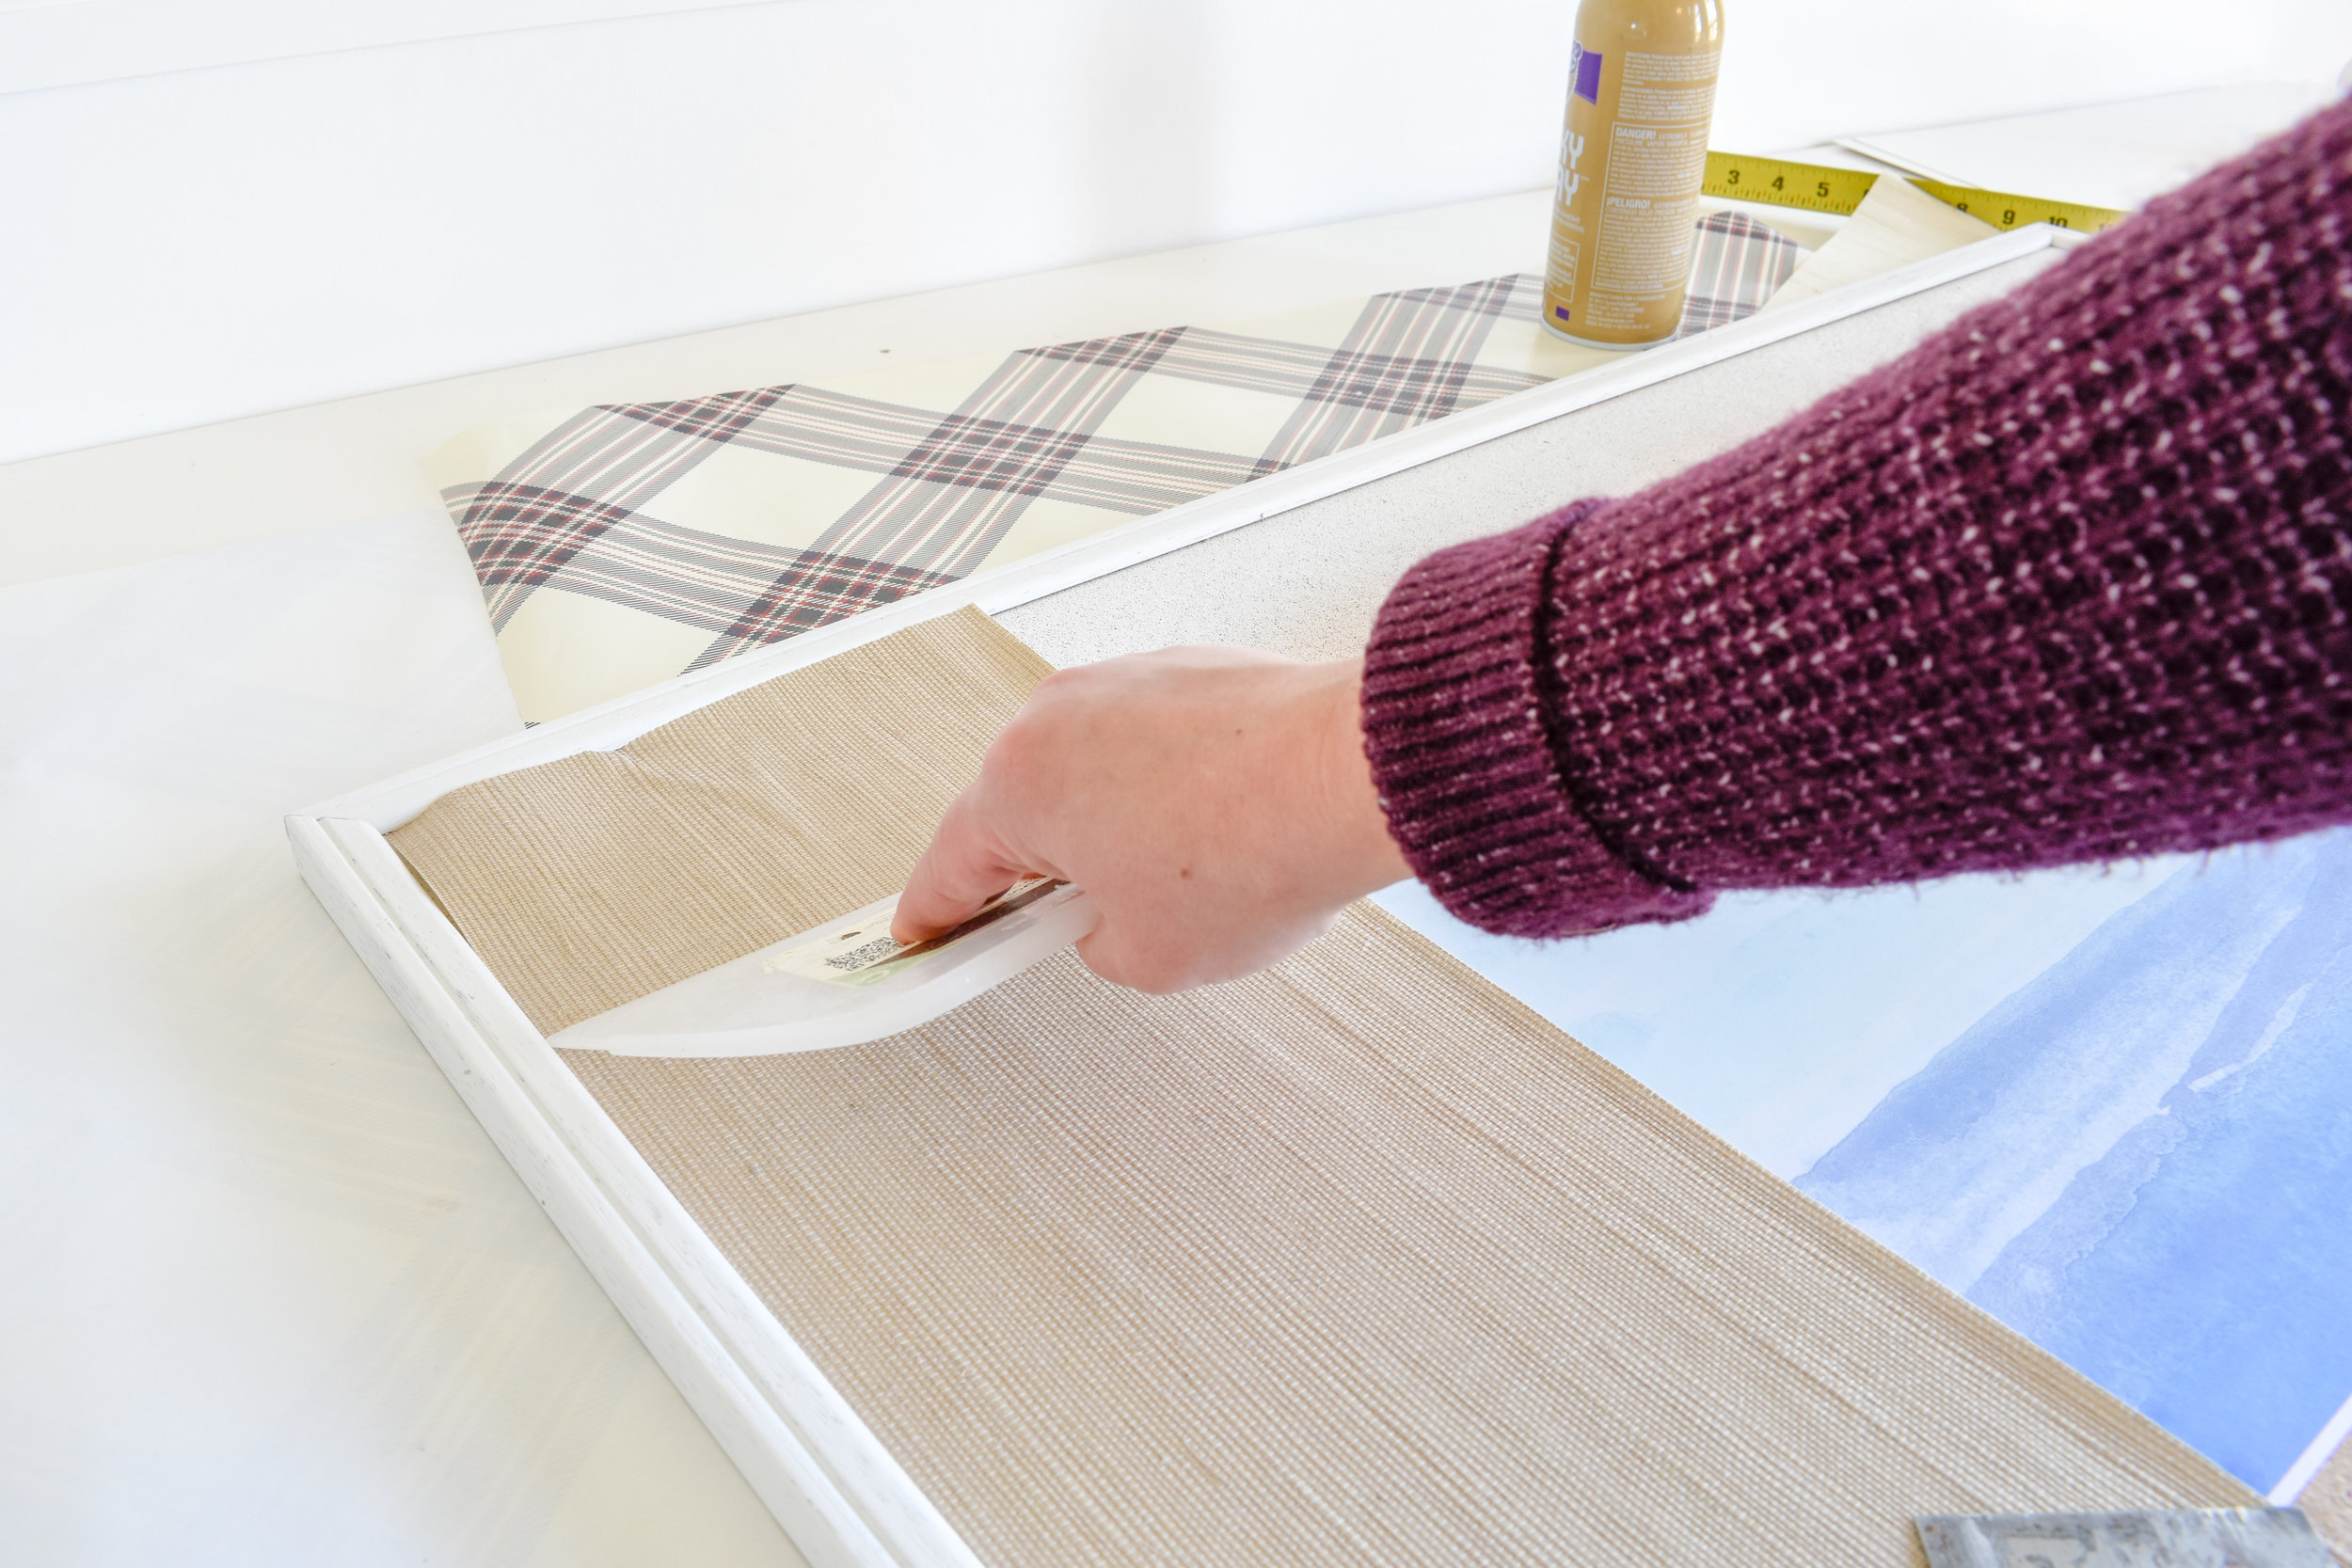 DIY Tutorial   Grasscloth Picture Matting - You can get this expensive high-end look using wallpaper scraps or even apply the same technique with fabric or wrapping paper scraps!